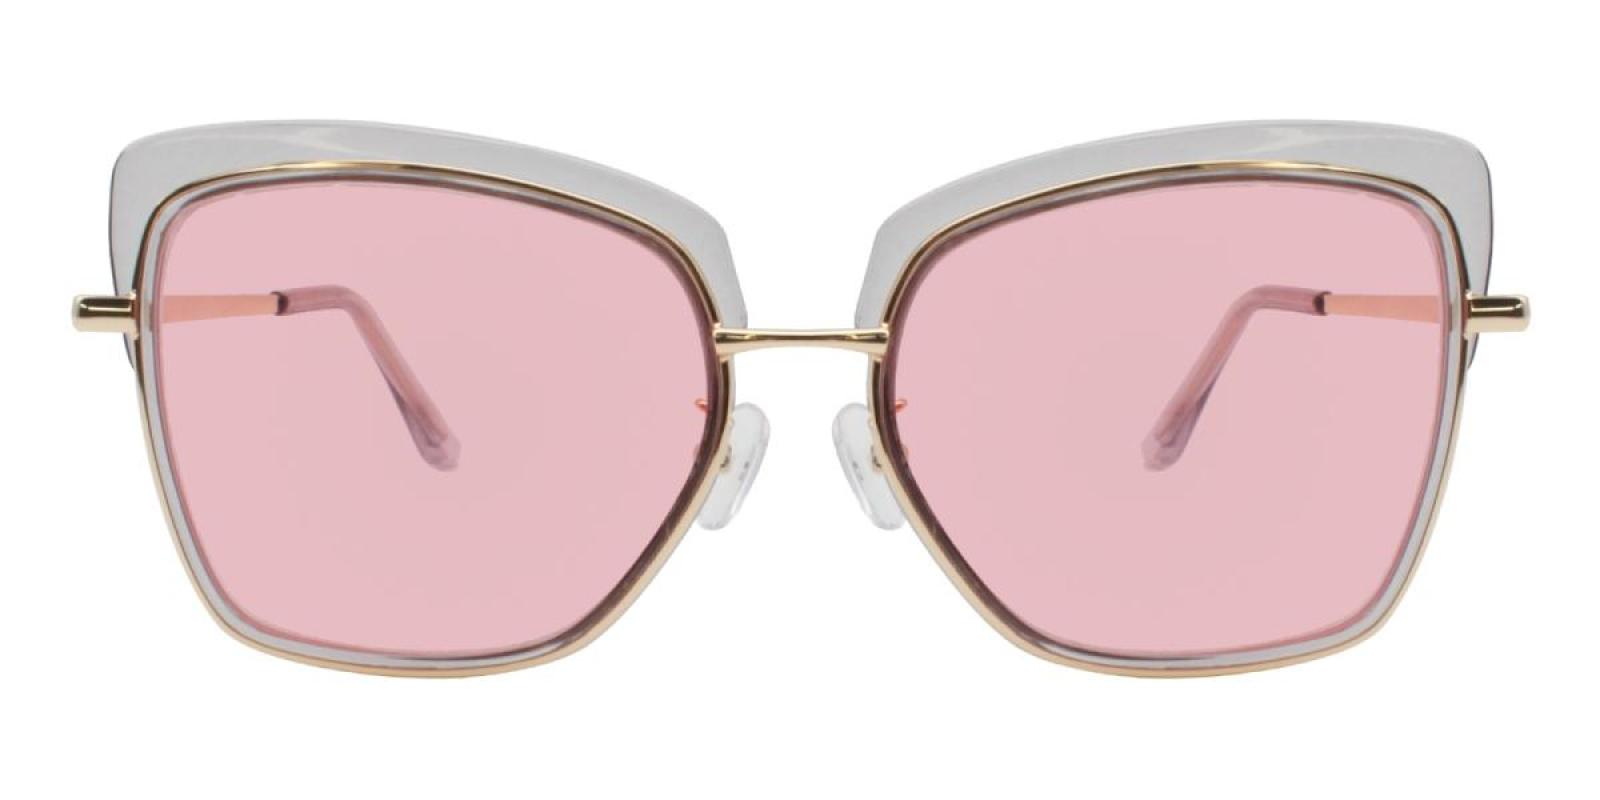 Riotousy-Translucent-Cat-Metal / Combination / TR-Sunglasses-additional2